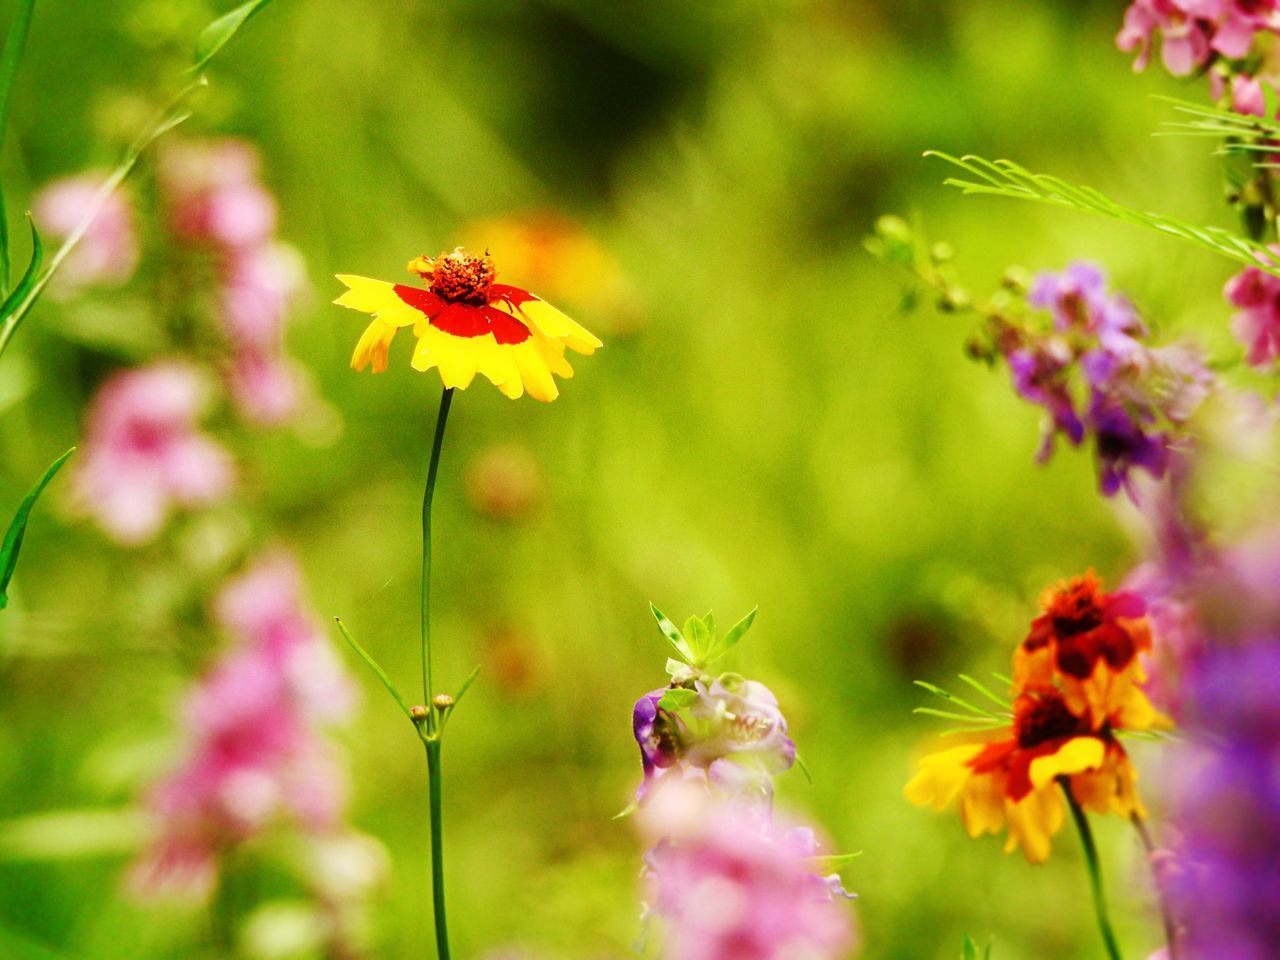 flower, fragility, growth, plant, yellow, petal, beauty in nature, nature, day, insect, freshness, focus on foreground, no people, close-up, flower head, animal themes, outdoors